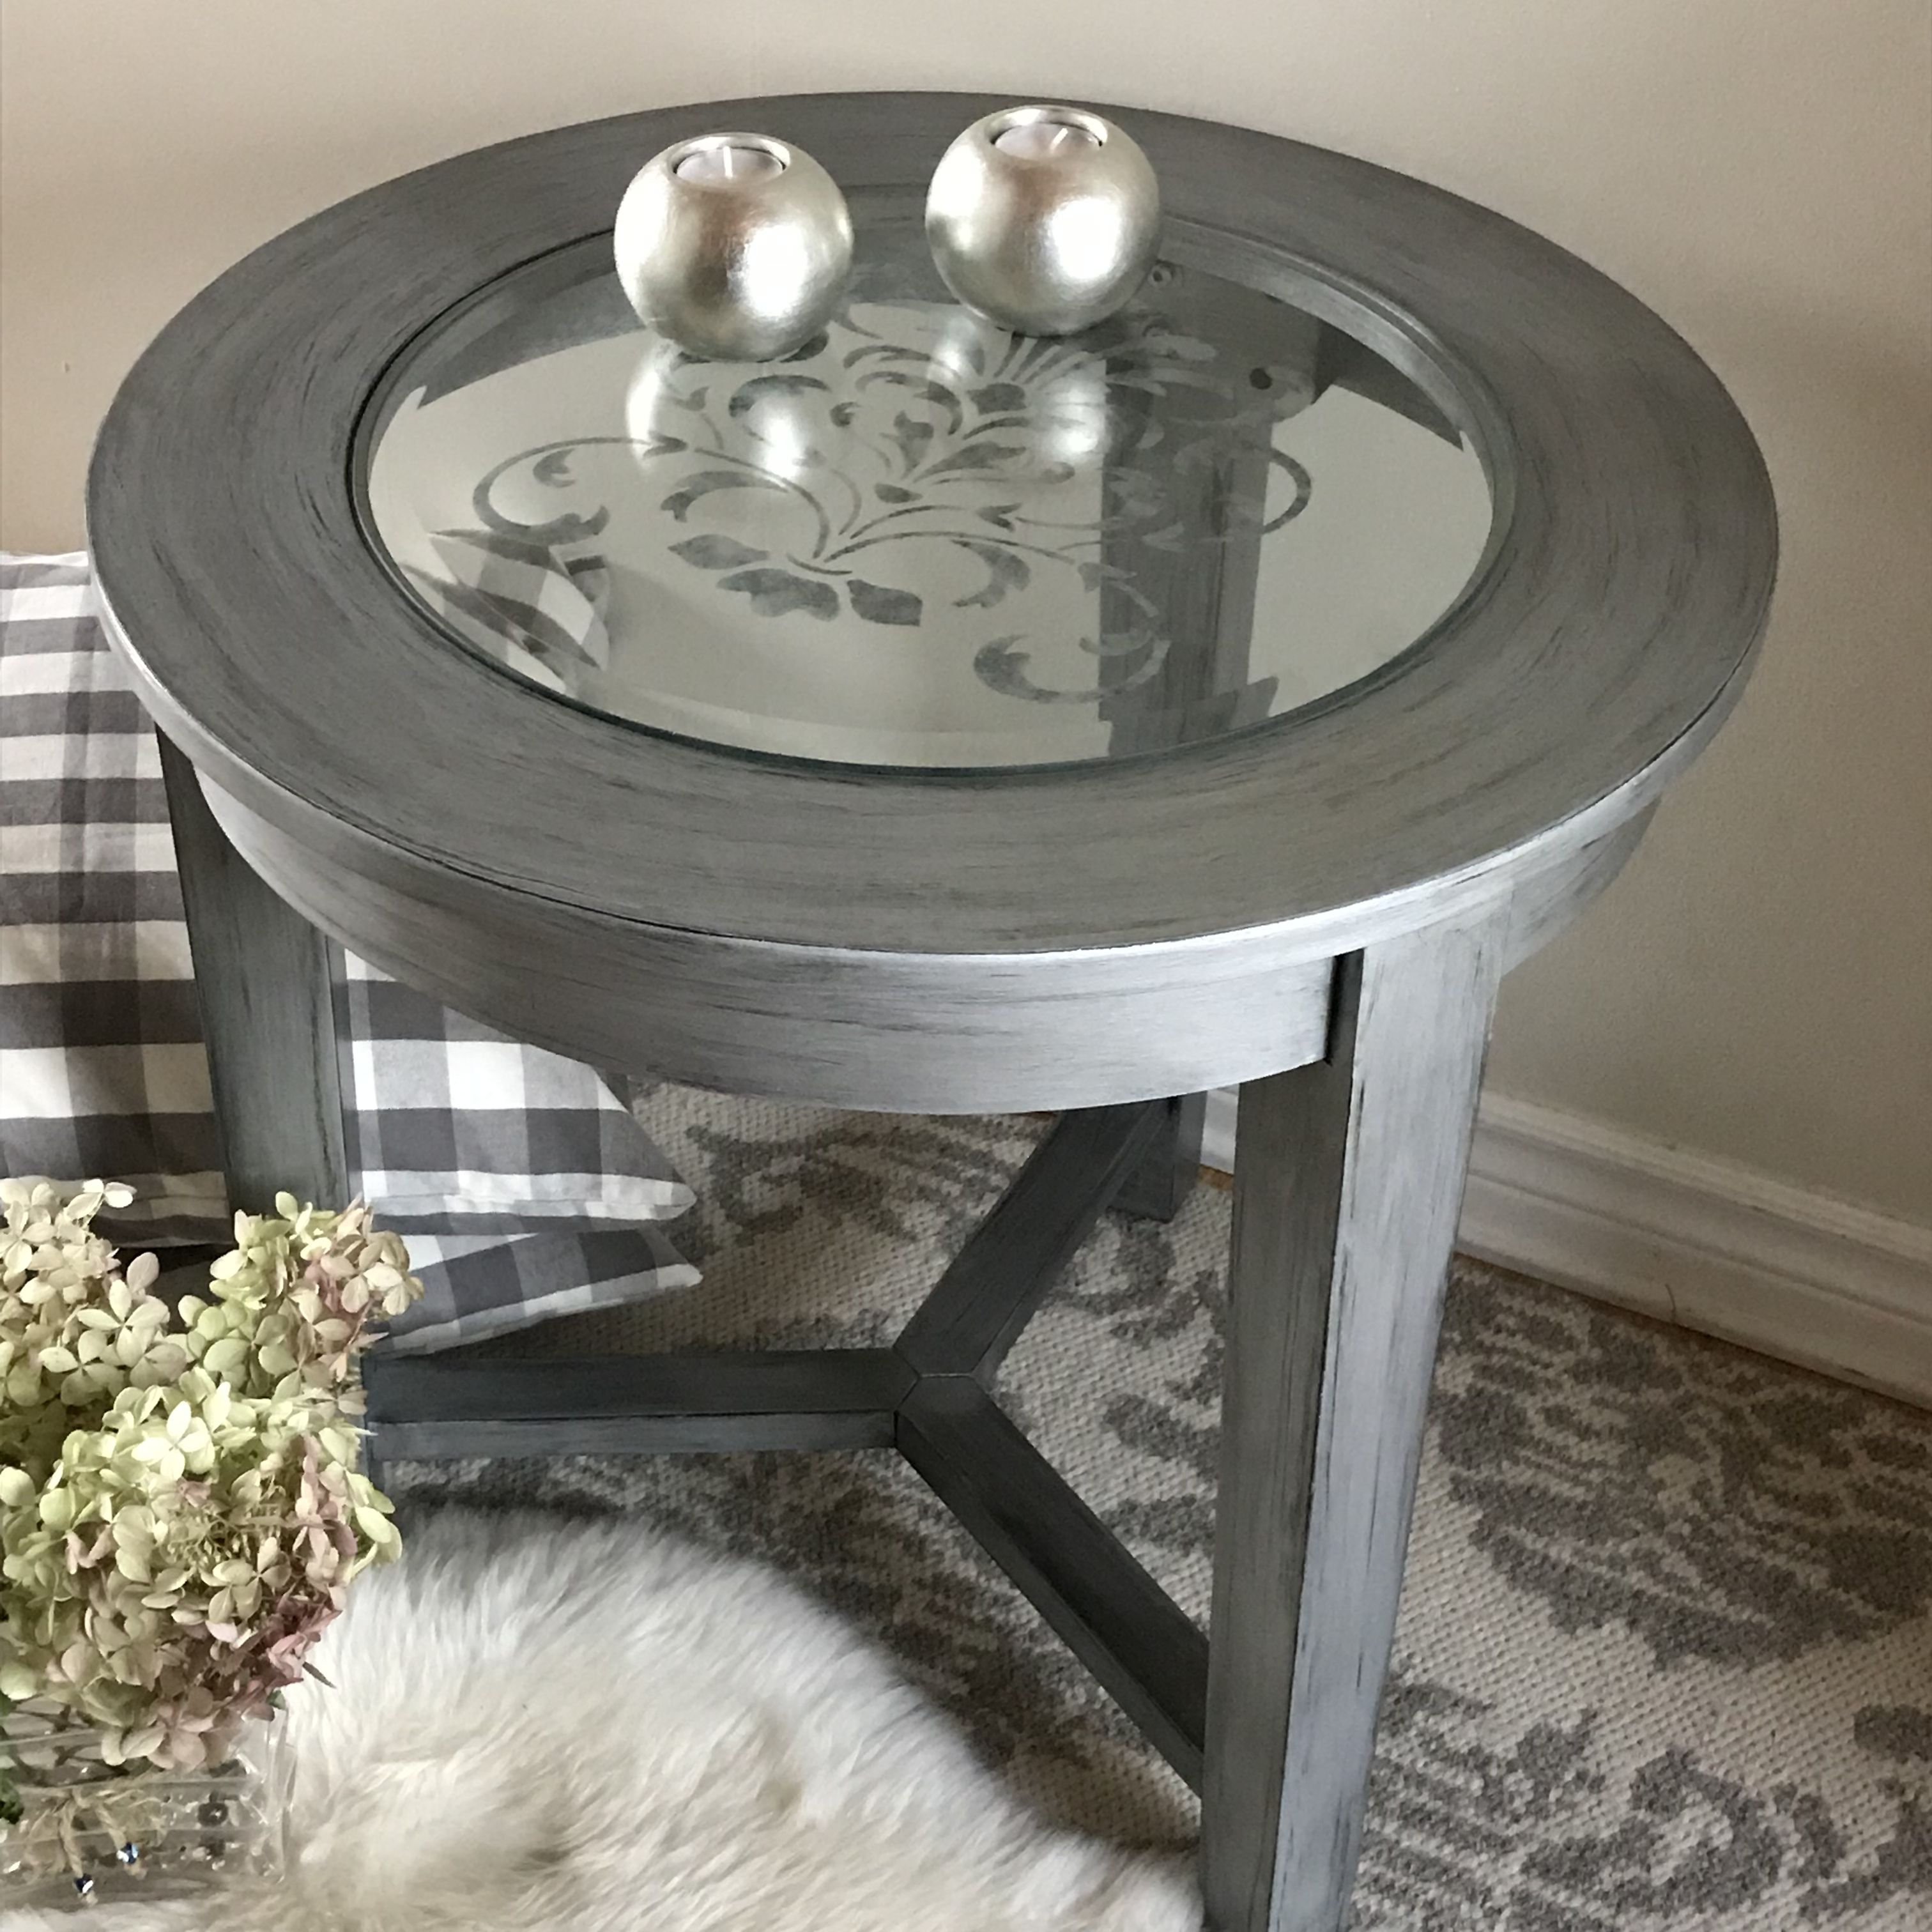 24+ Vintage wood coffee table with glass top ideas in 2021